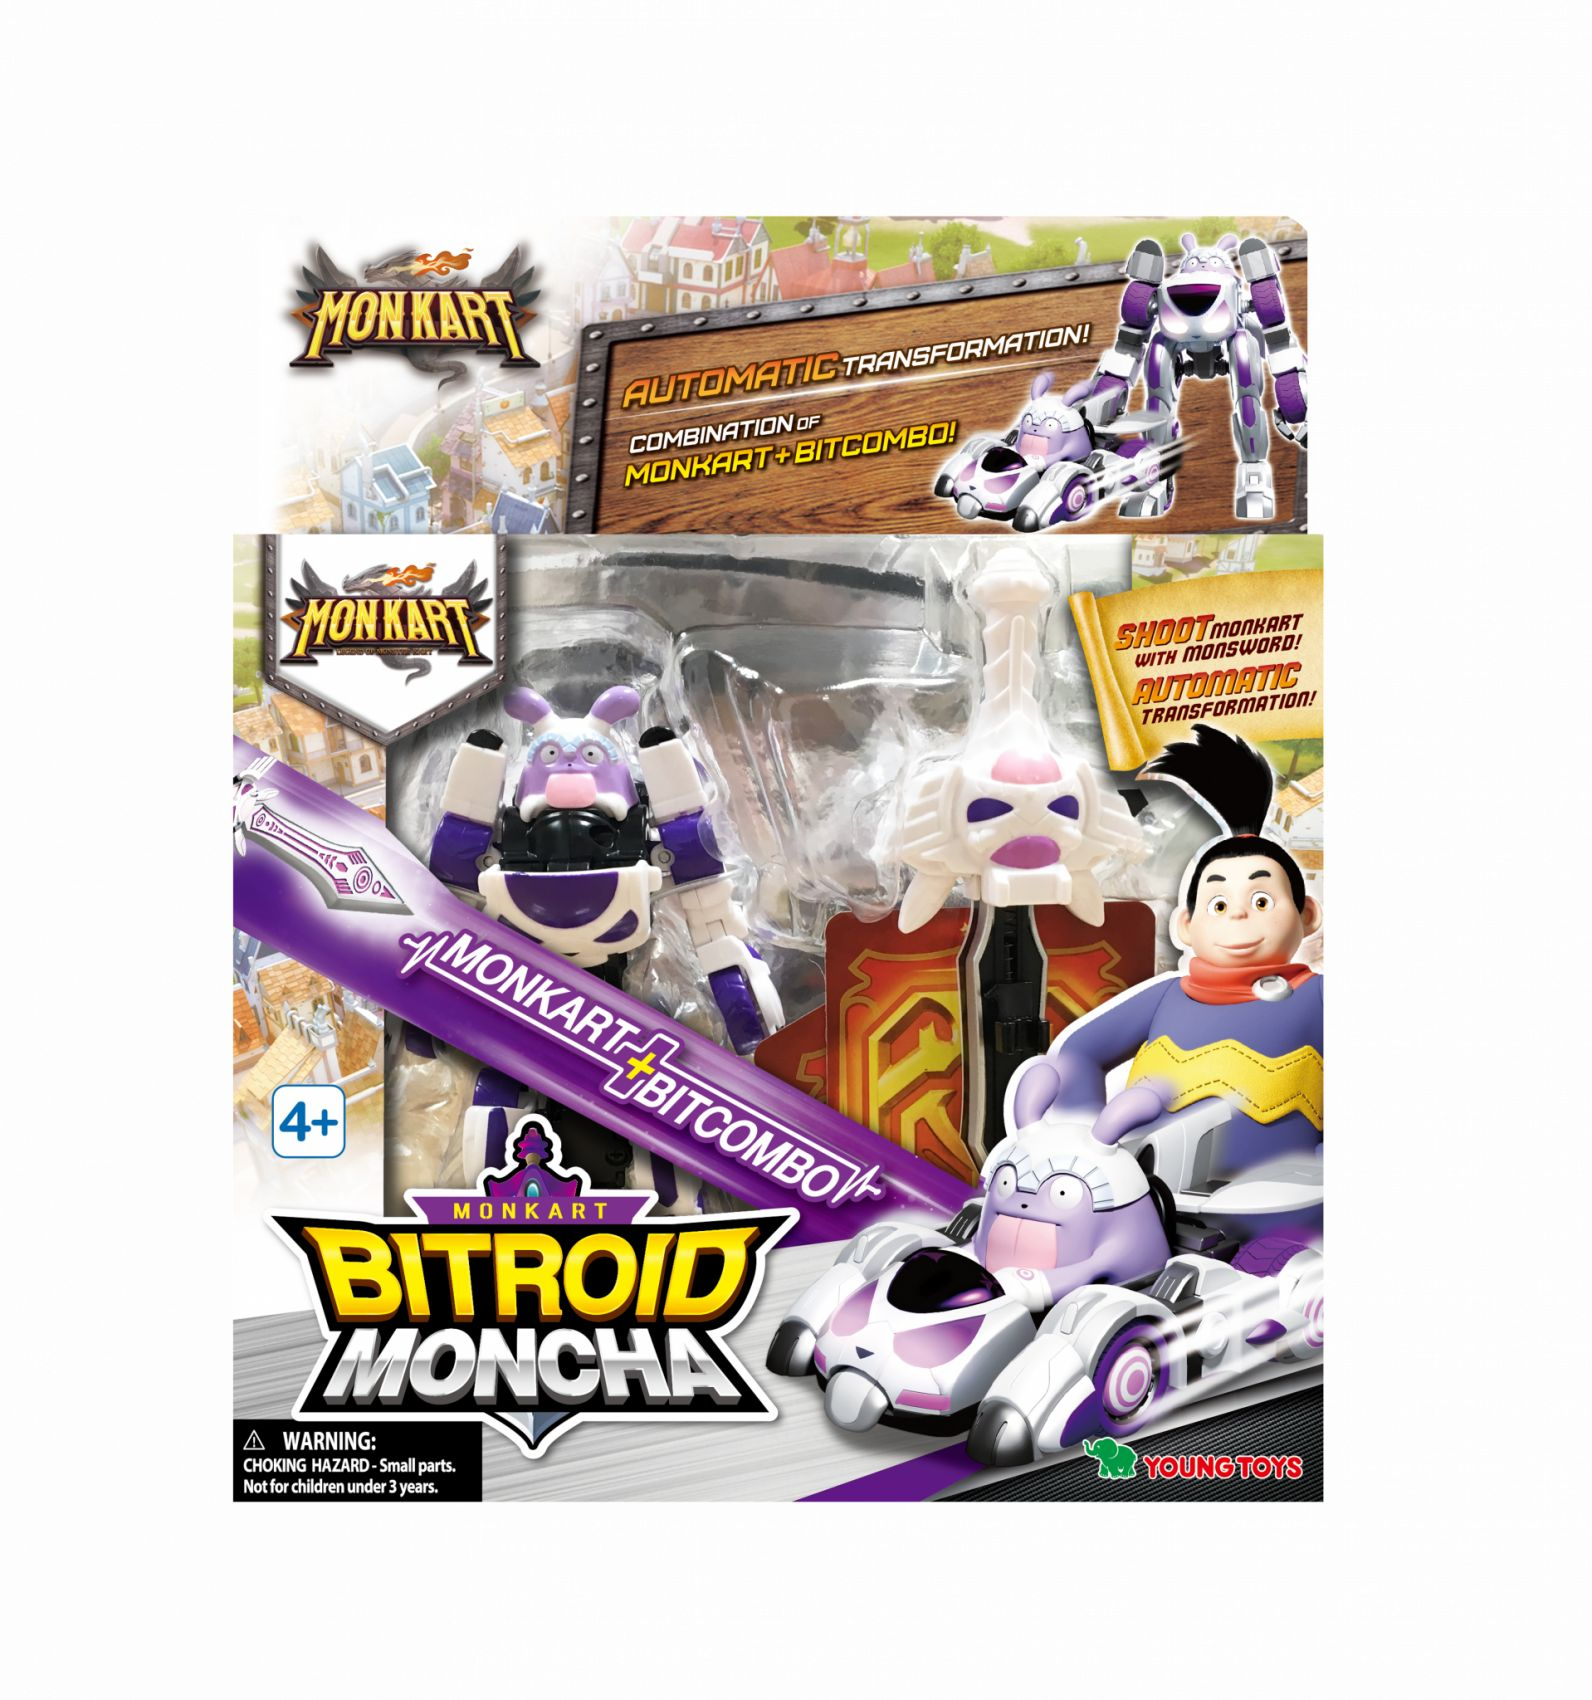 MONKART Bitroid Moncha